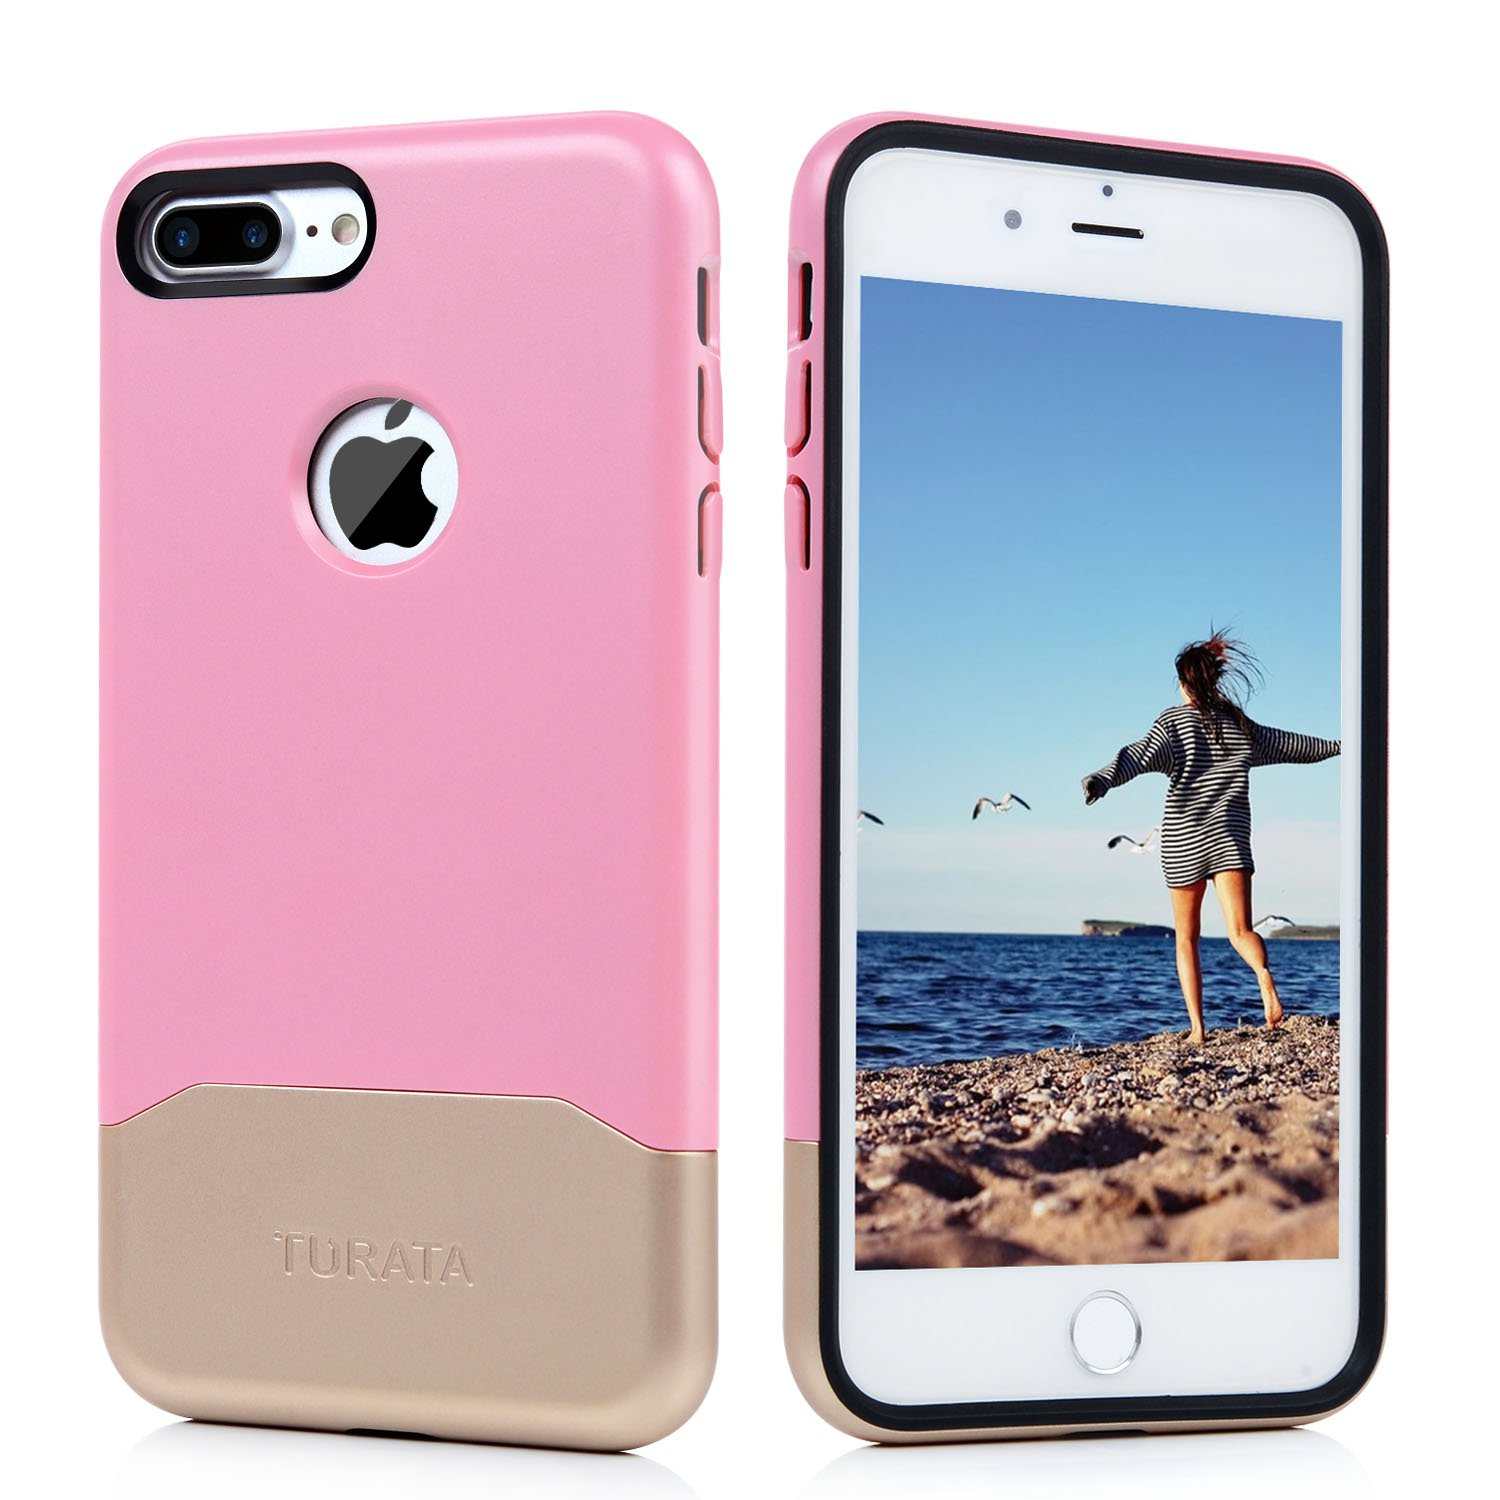 brand new f7f00 cbe05 Chnano iPhone 7 Plus Case Dual Layer Case i7 Plus Cover Shock Absorption  Heavy Duty Protective Hybrid Armor Skin for iPhone 7 Plus 5.5 inch (Rose ...